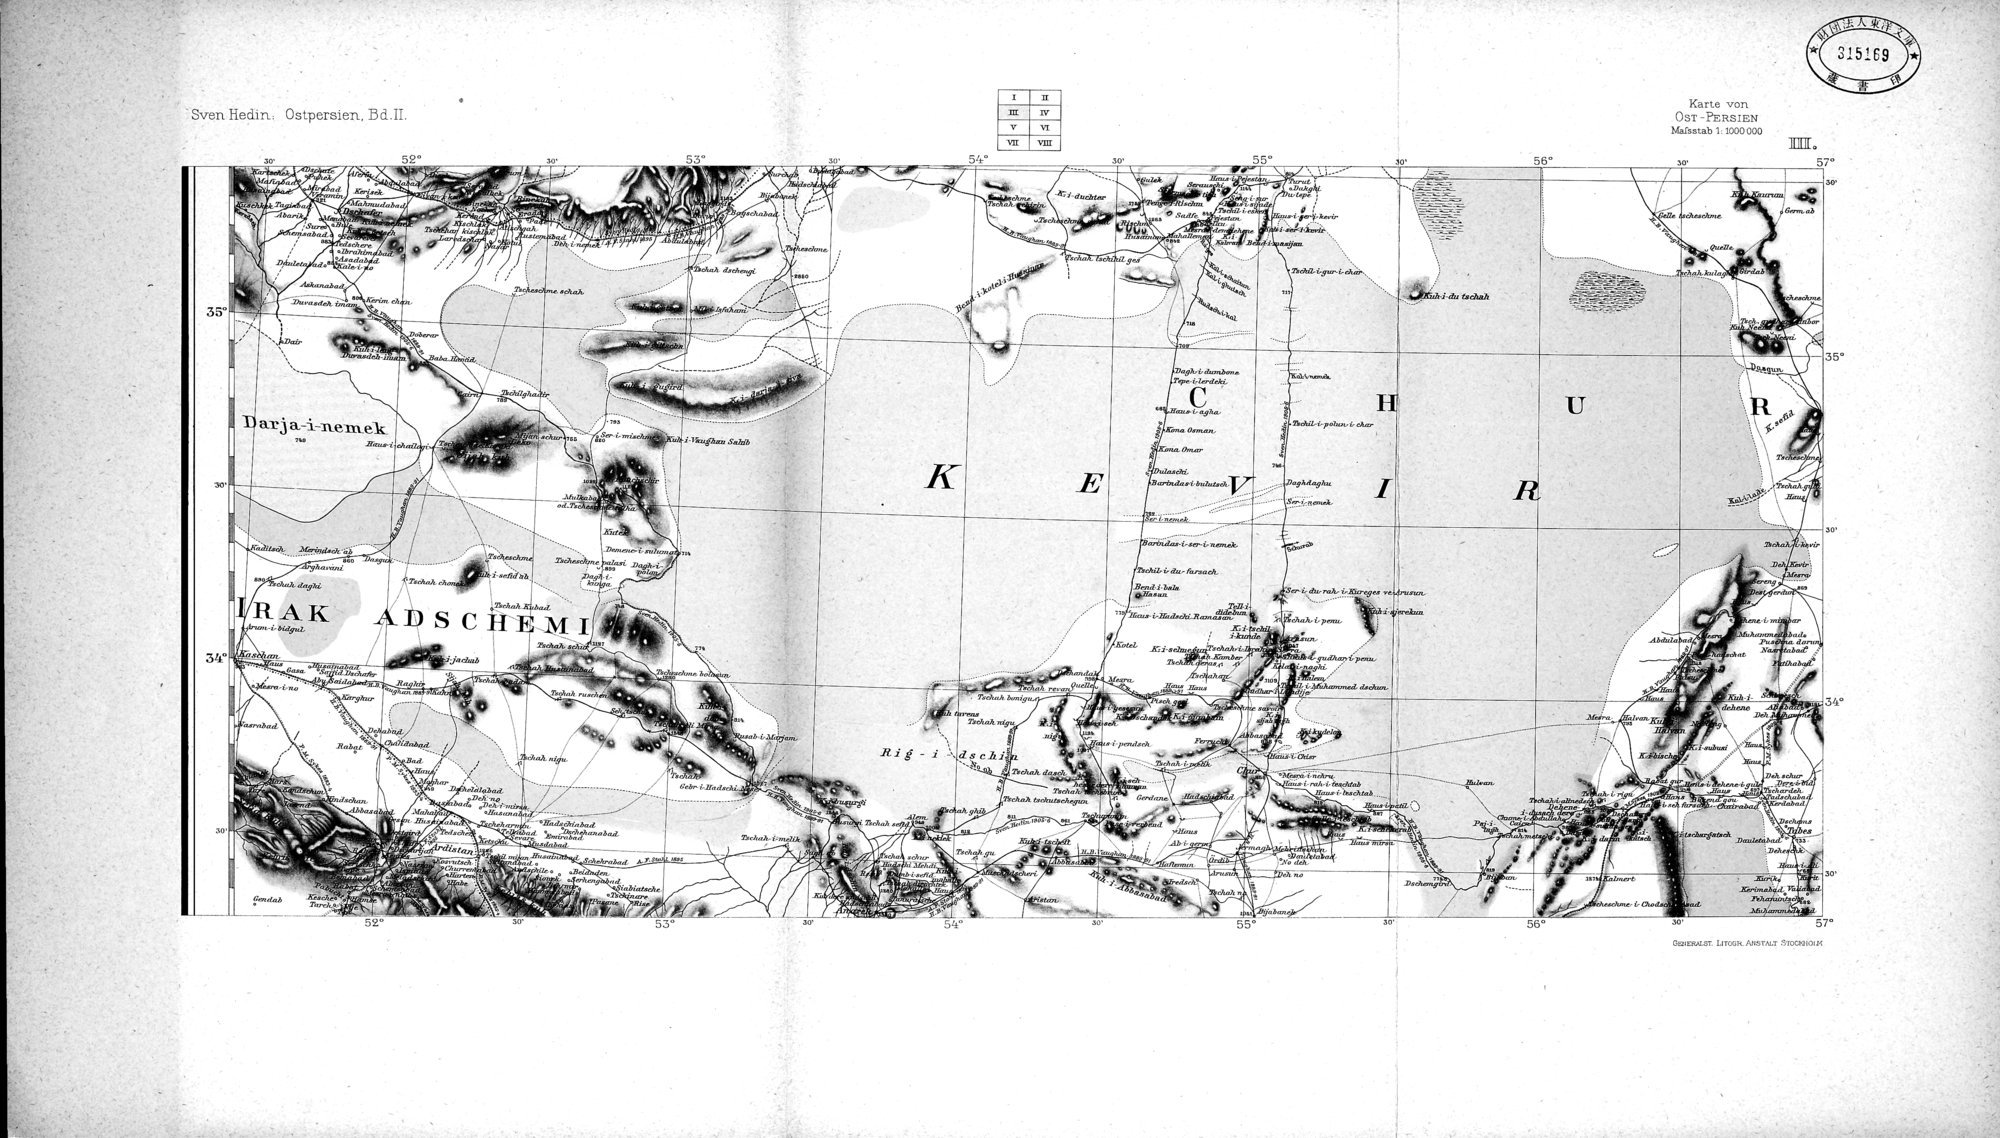 Eine Routenaufnahme durch Ostpersien : vol.3 / Page 7 (Grayscale High Resolution Image)